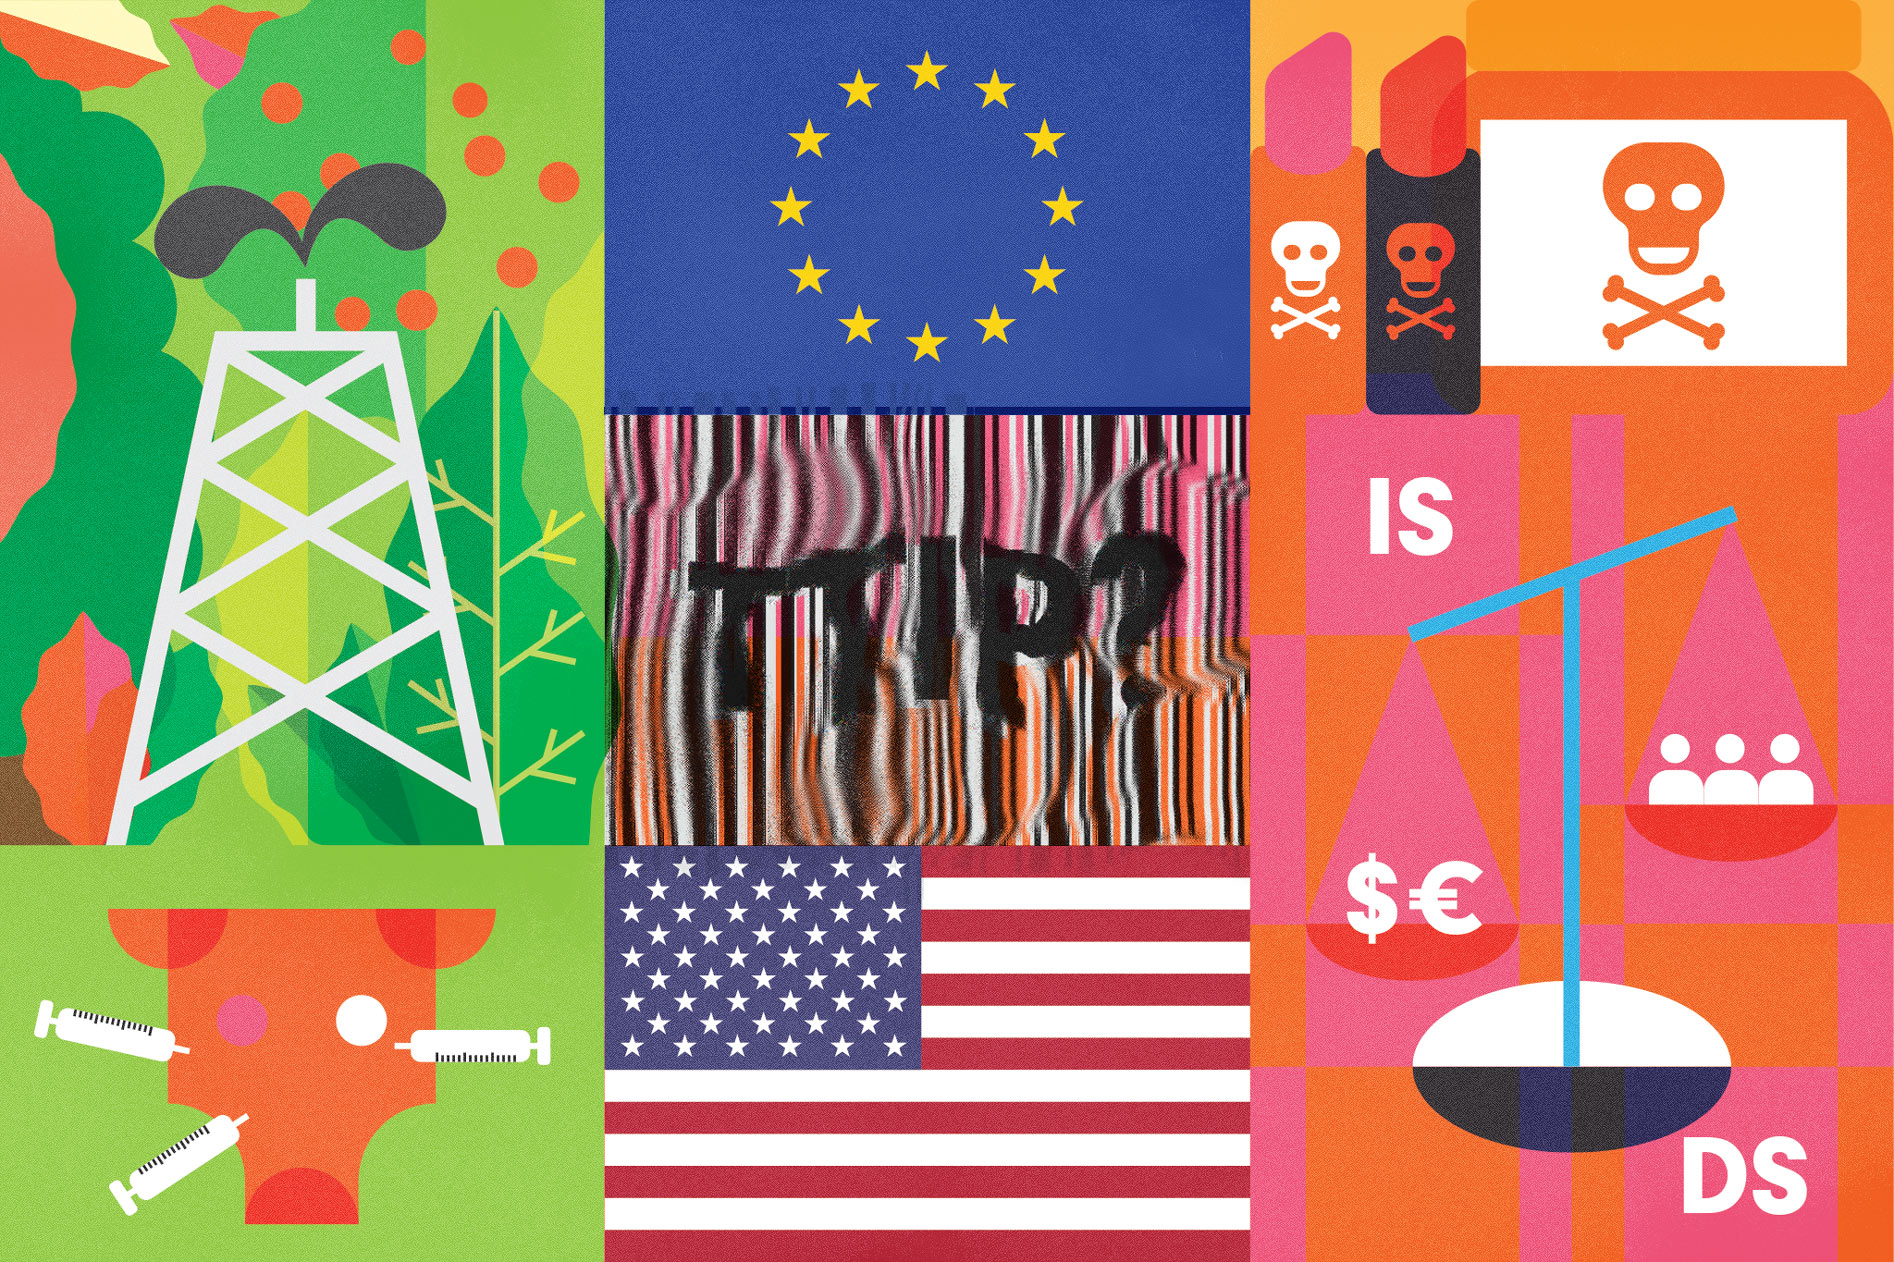 TTIP: What about it? illustration